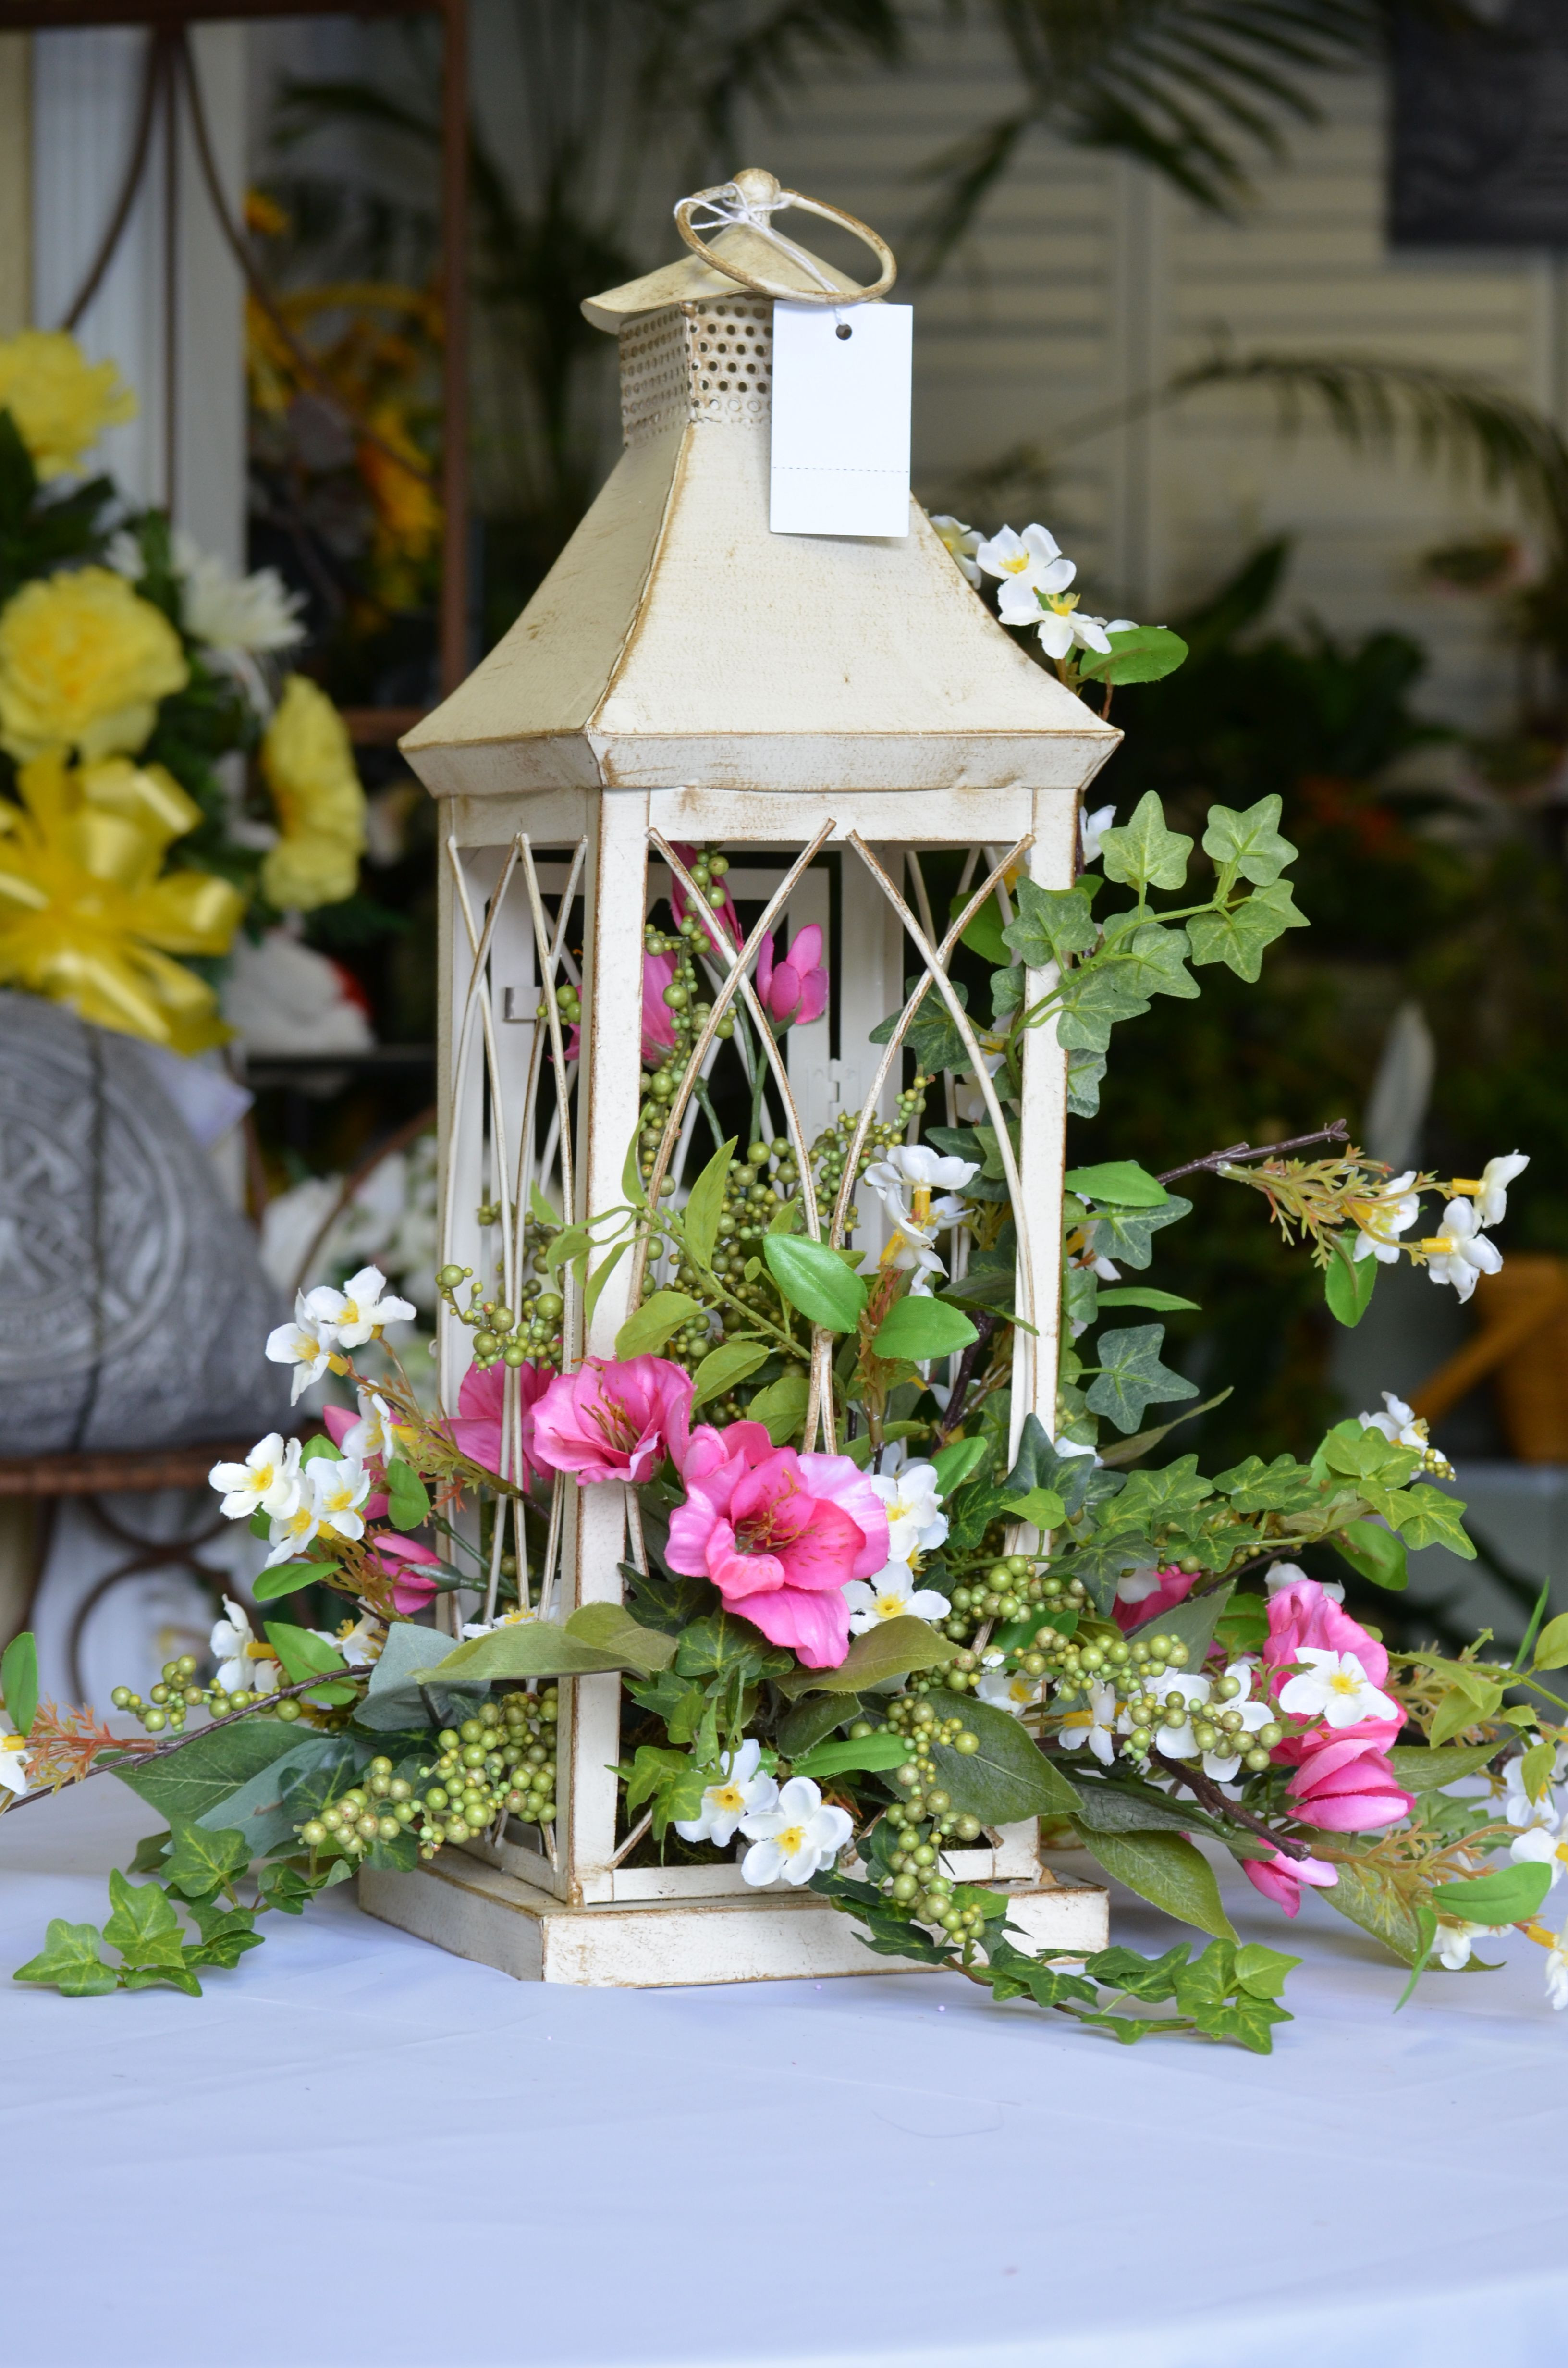 """A delightful silk arrangement in a lantern Never thought about allowing the flowers to """"spill"""" out of the lantern"""